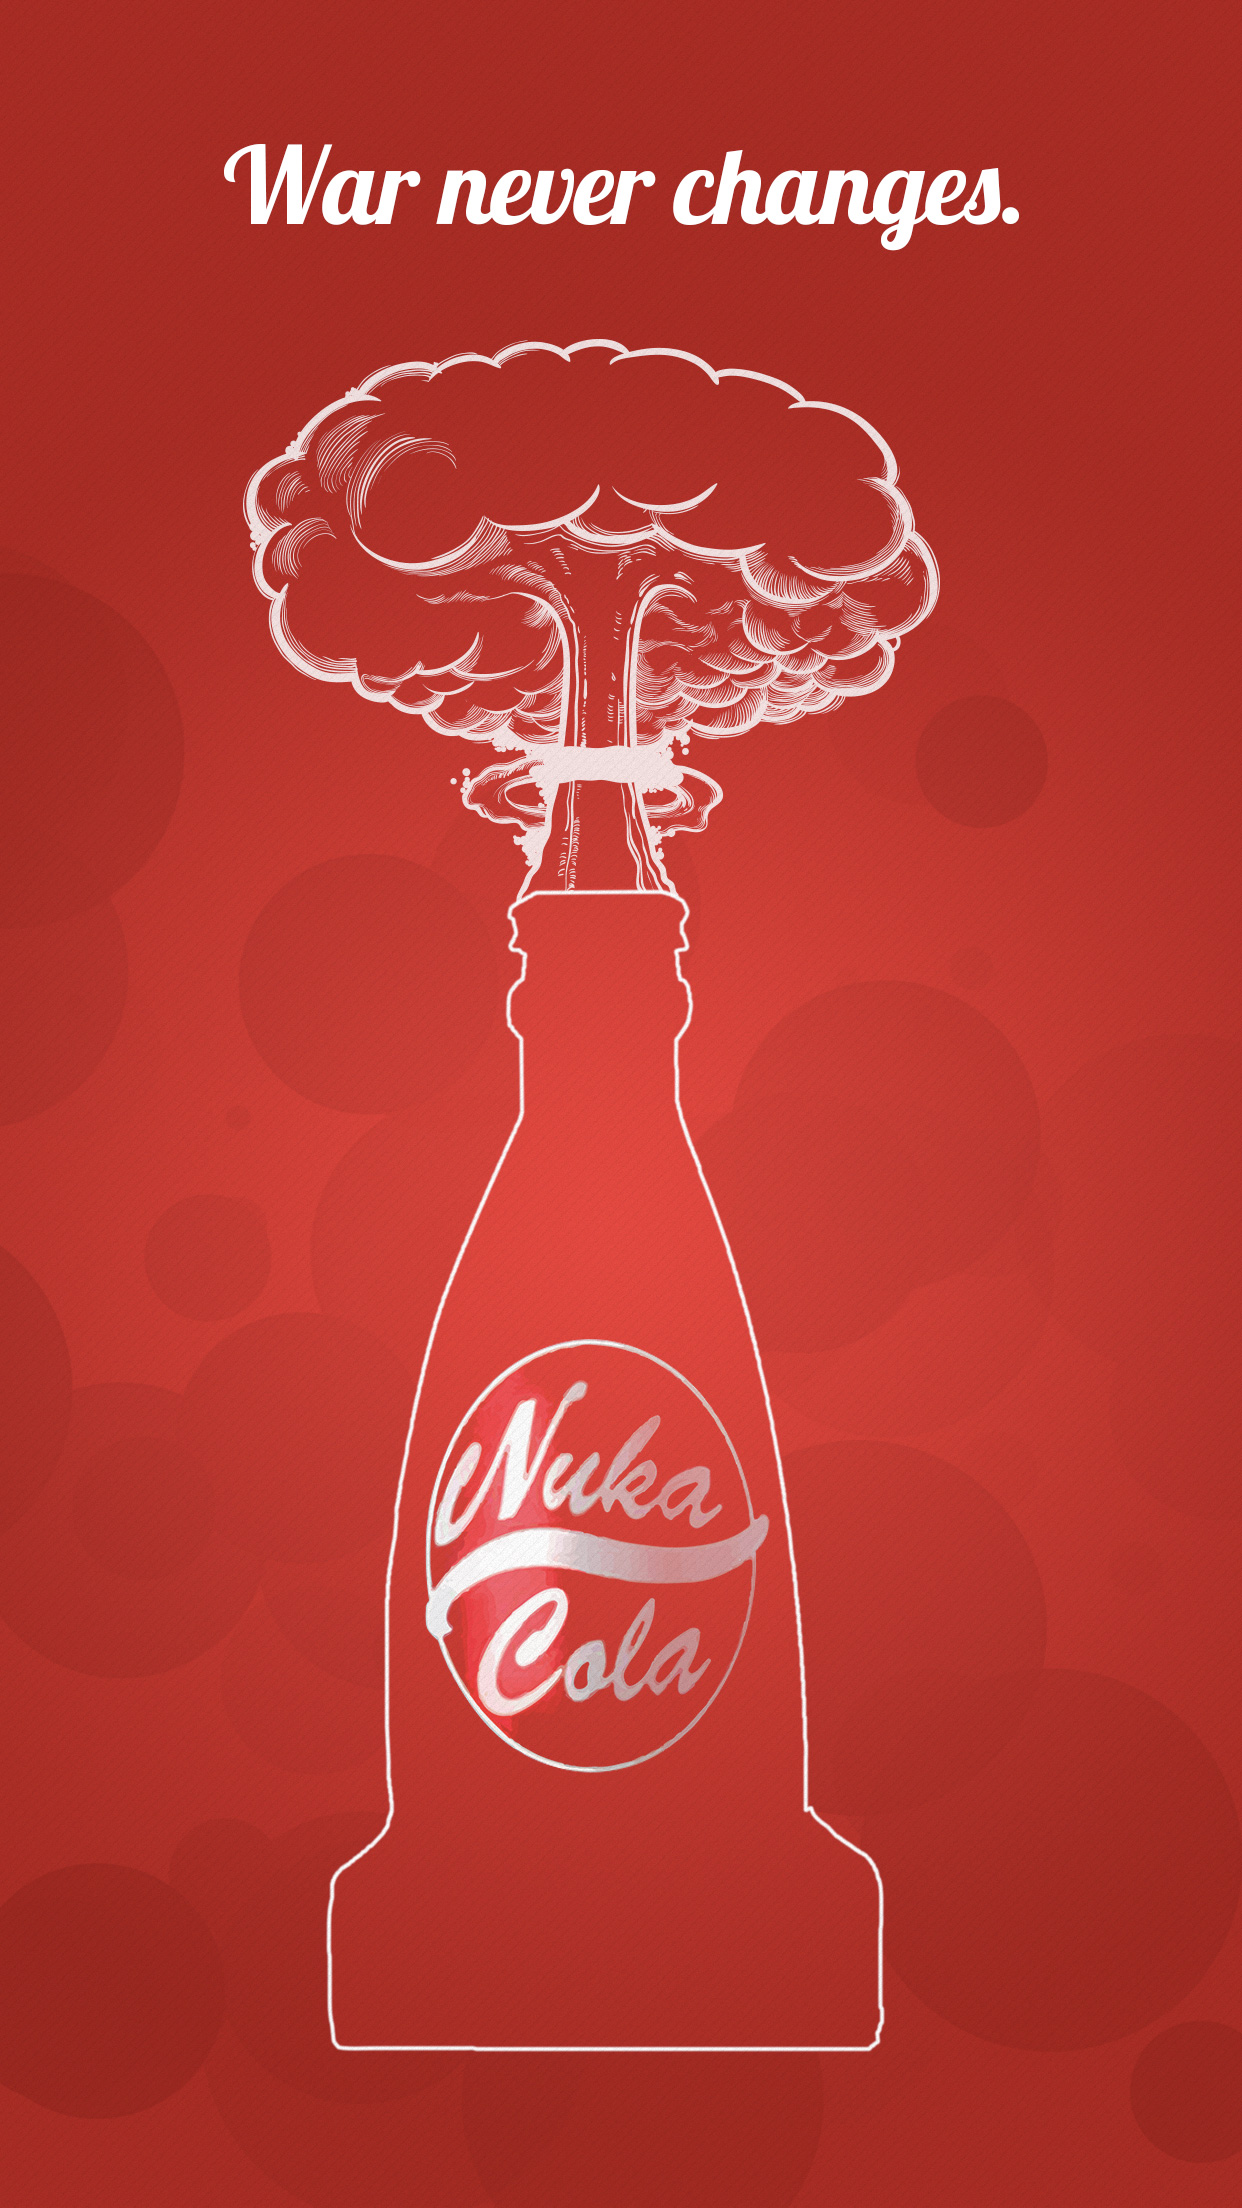 Fallout 4 Nuka Cola Wallpapers - Mobile and Desktop ...